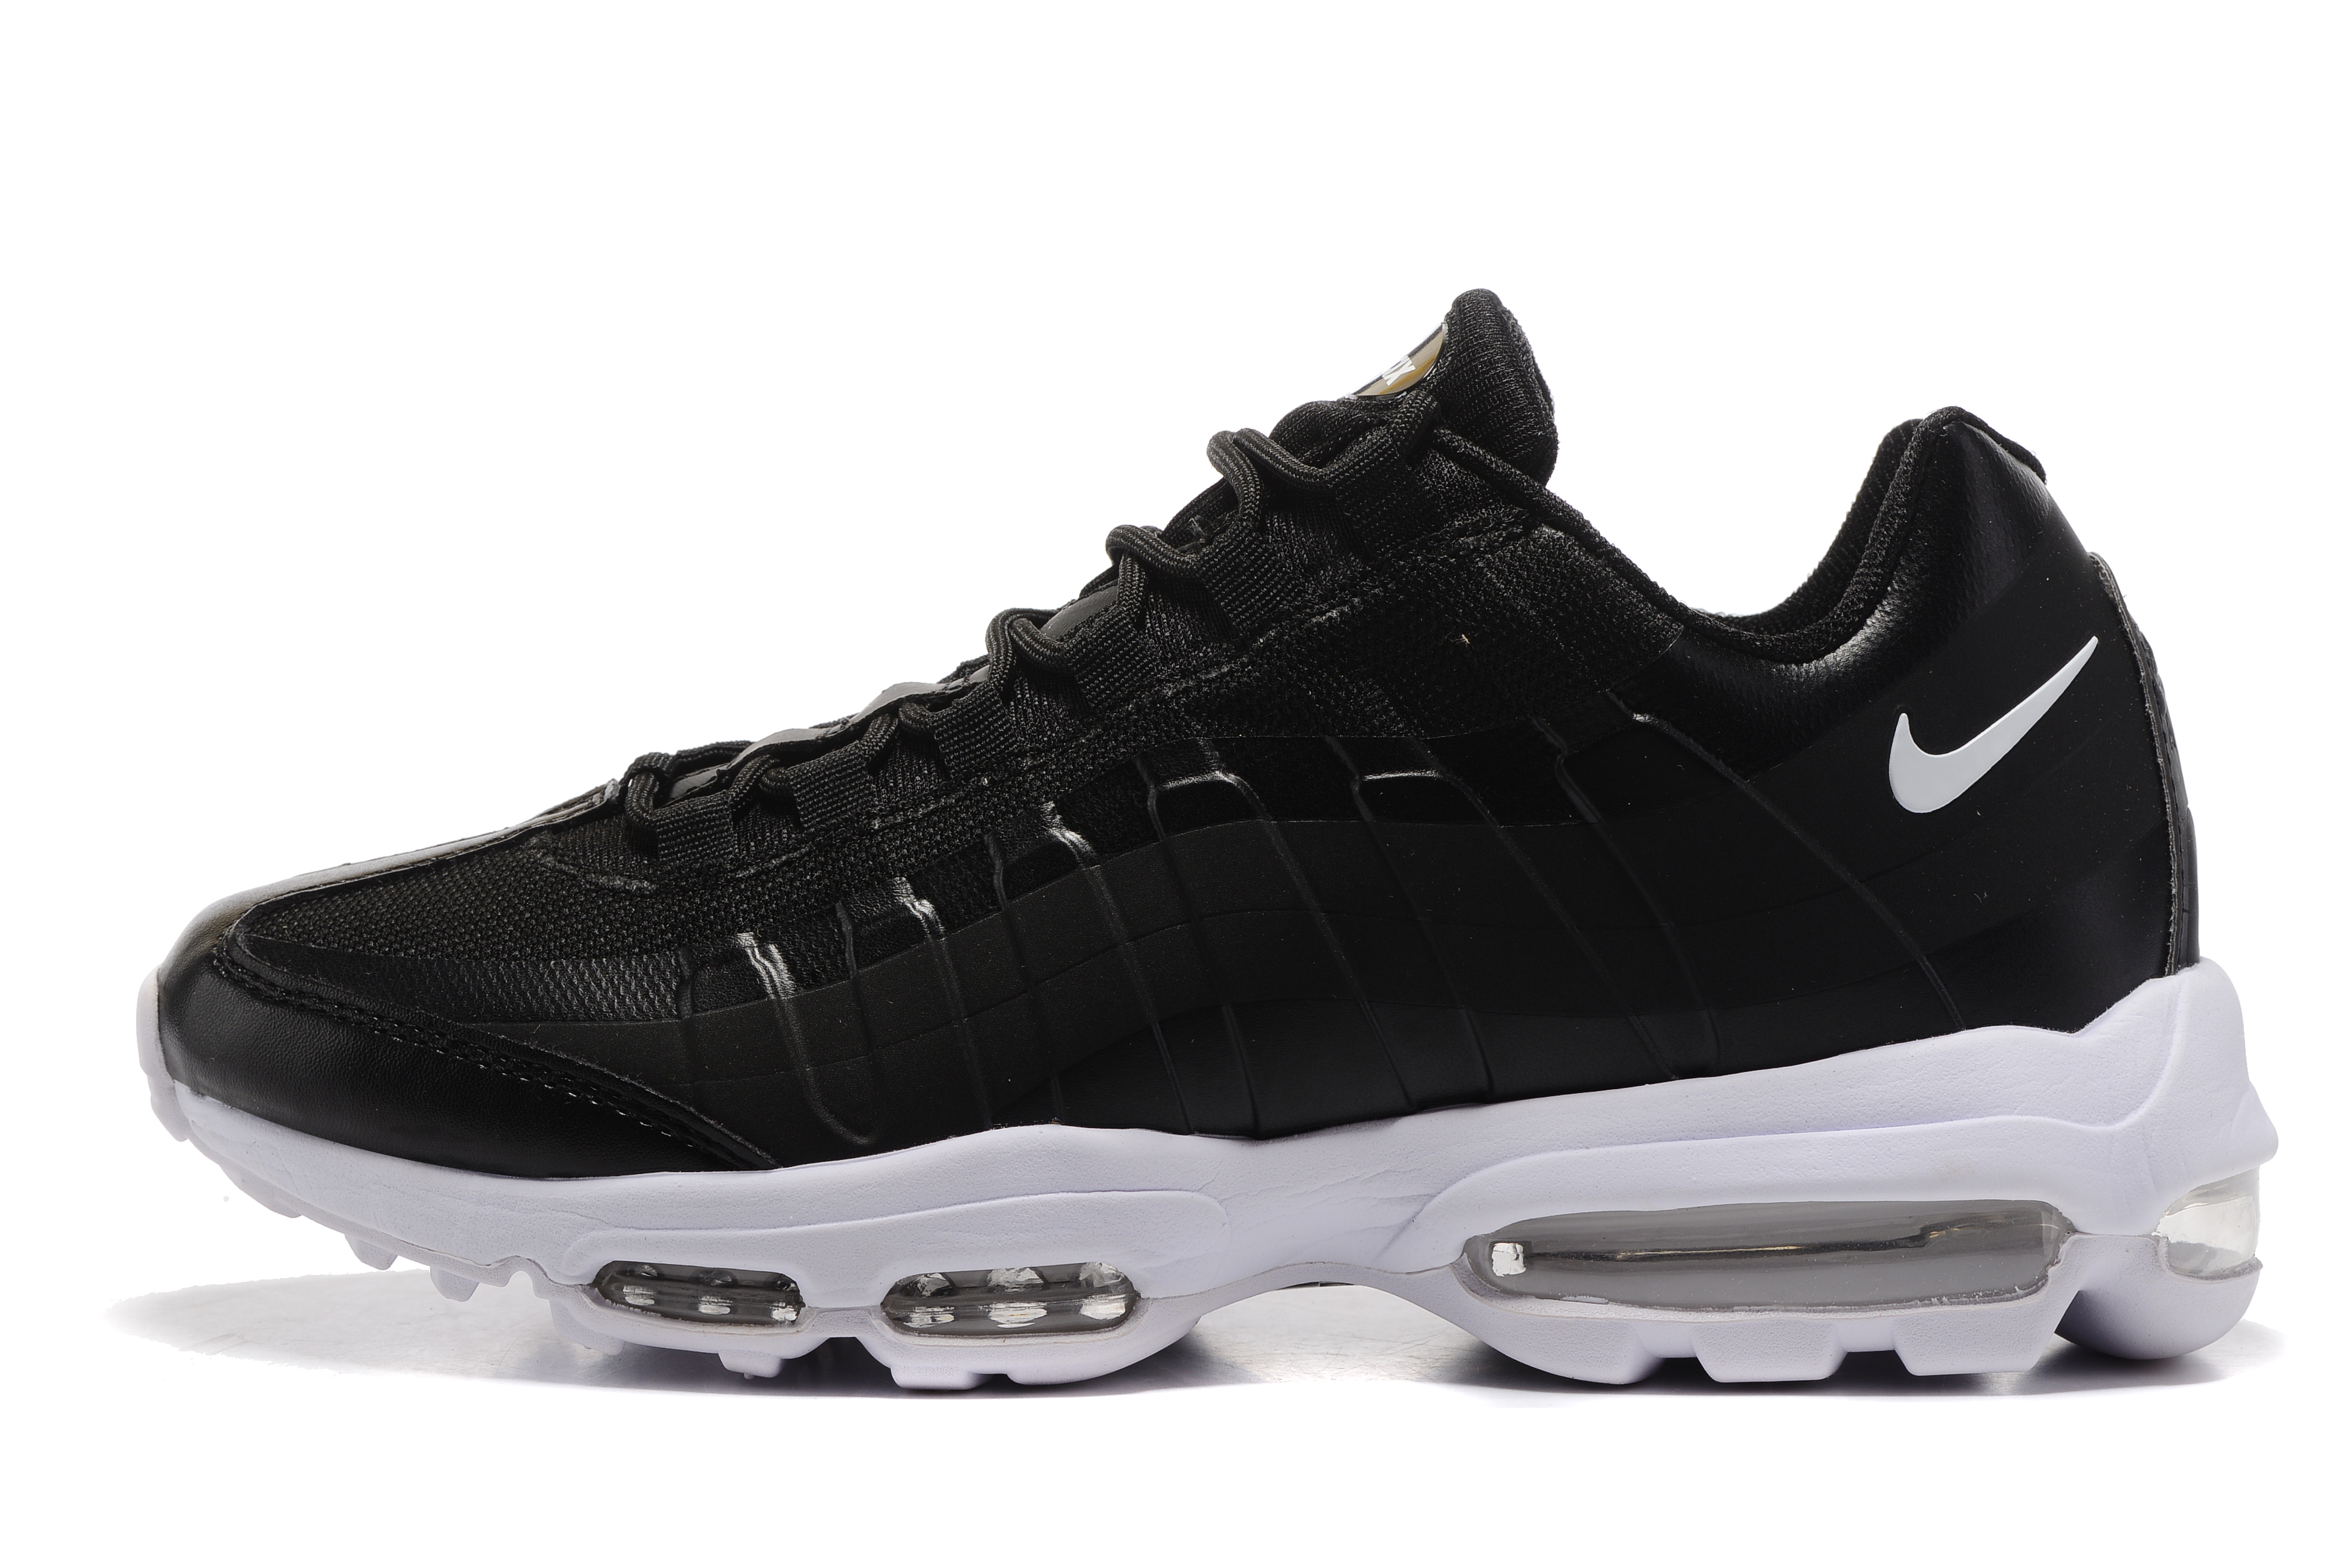 2017 Nike Air Max 95 Black White